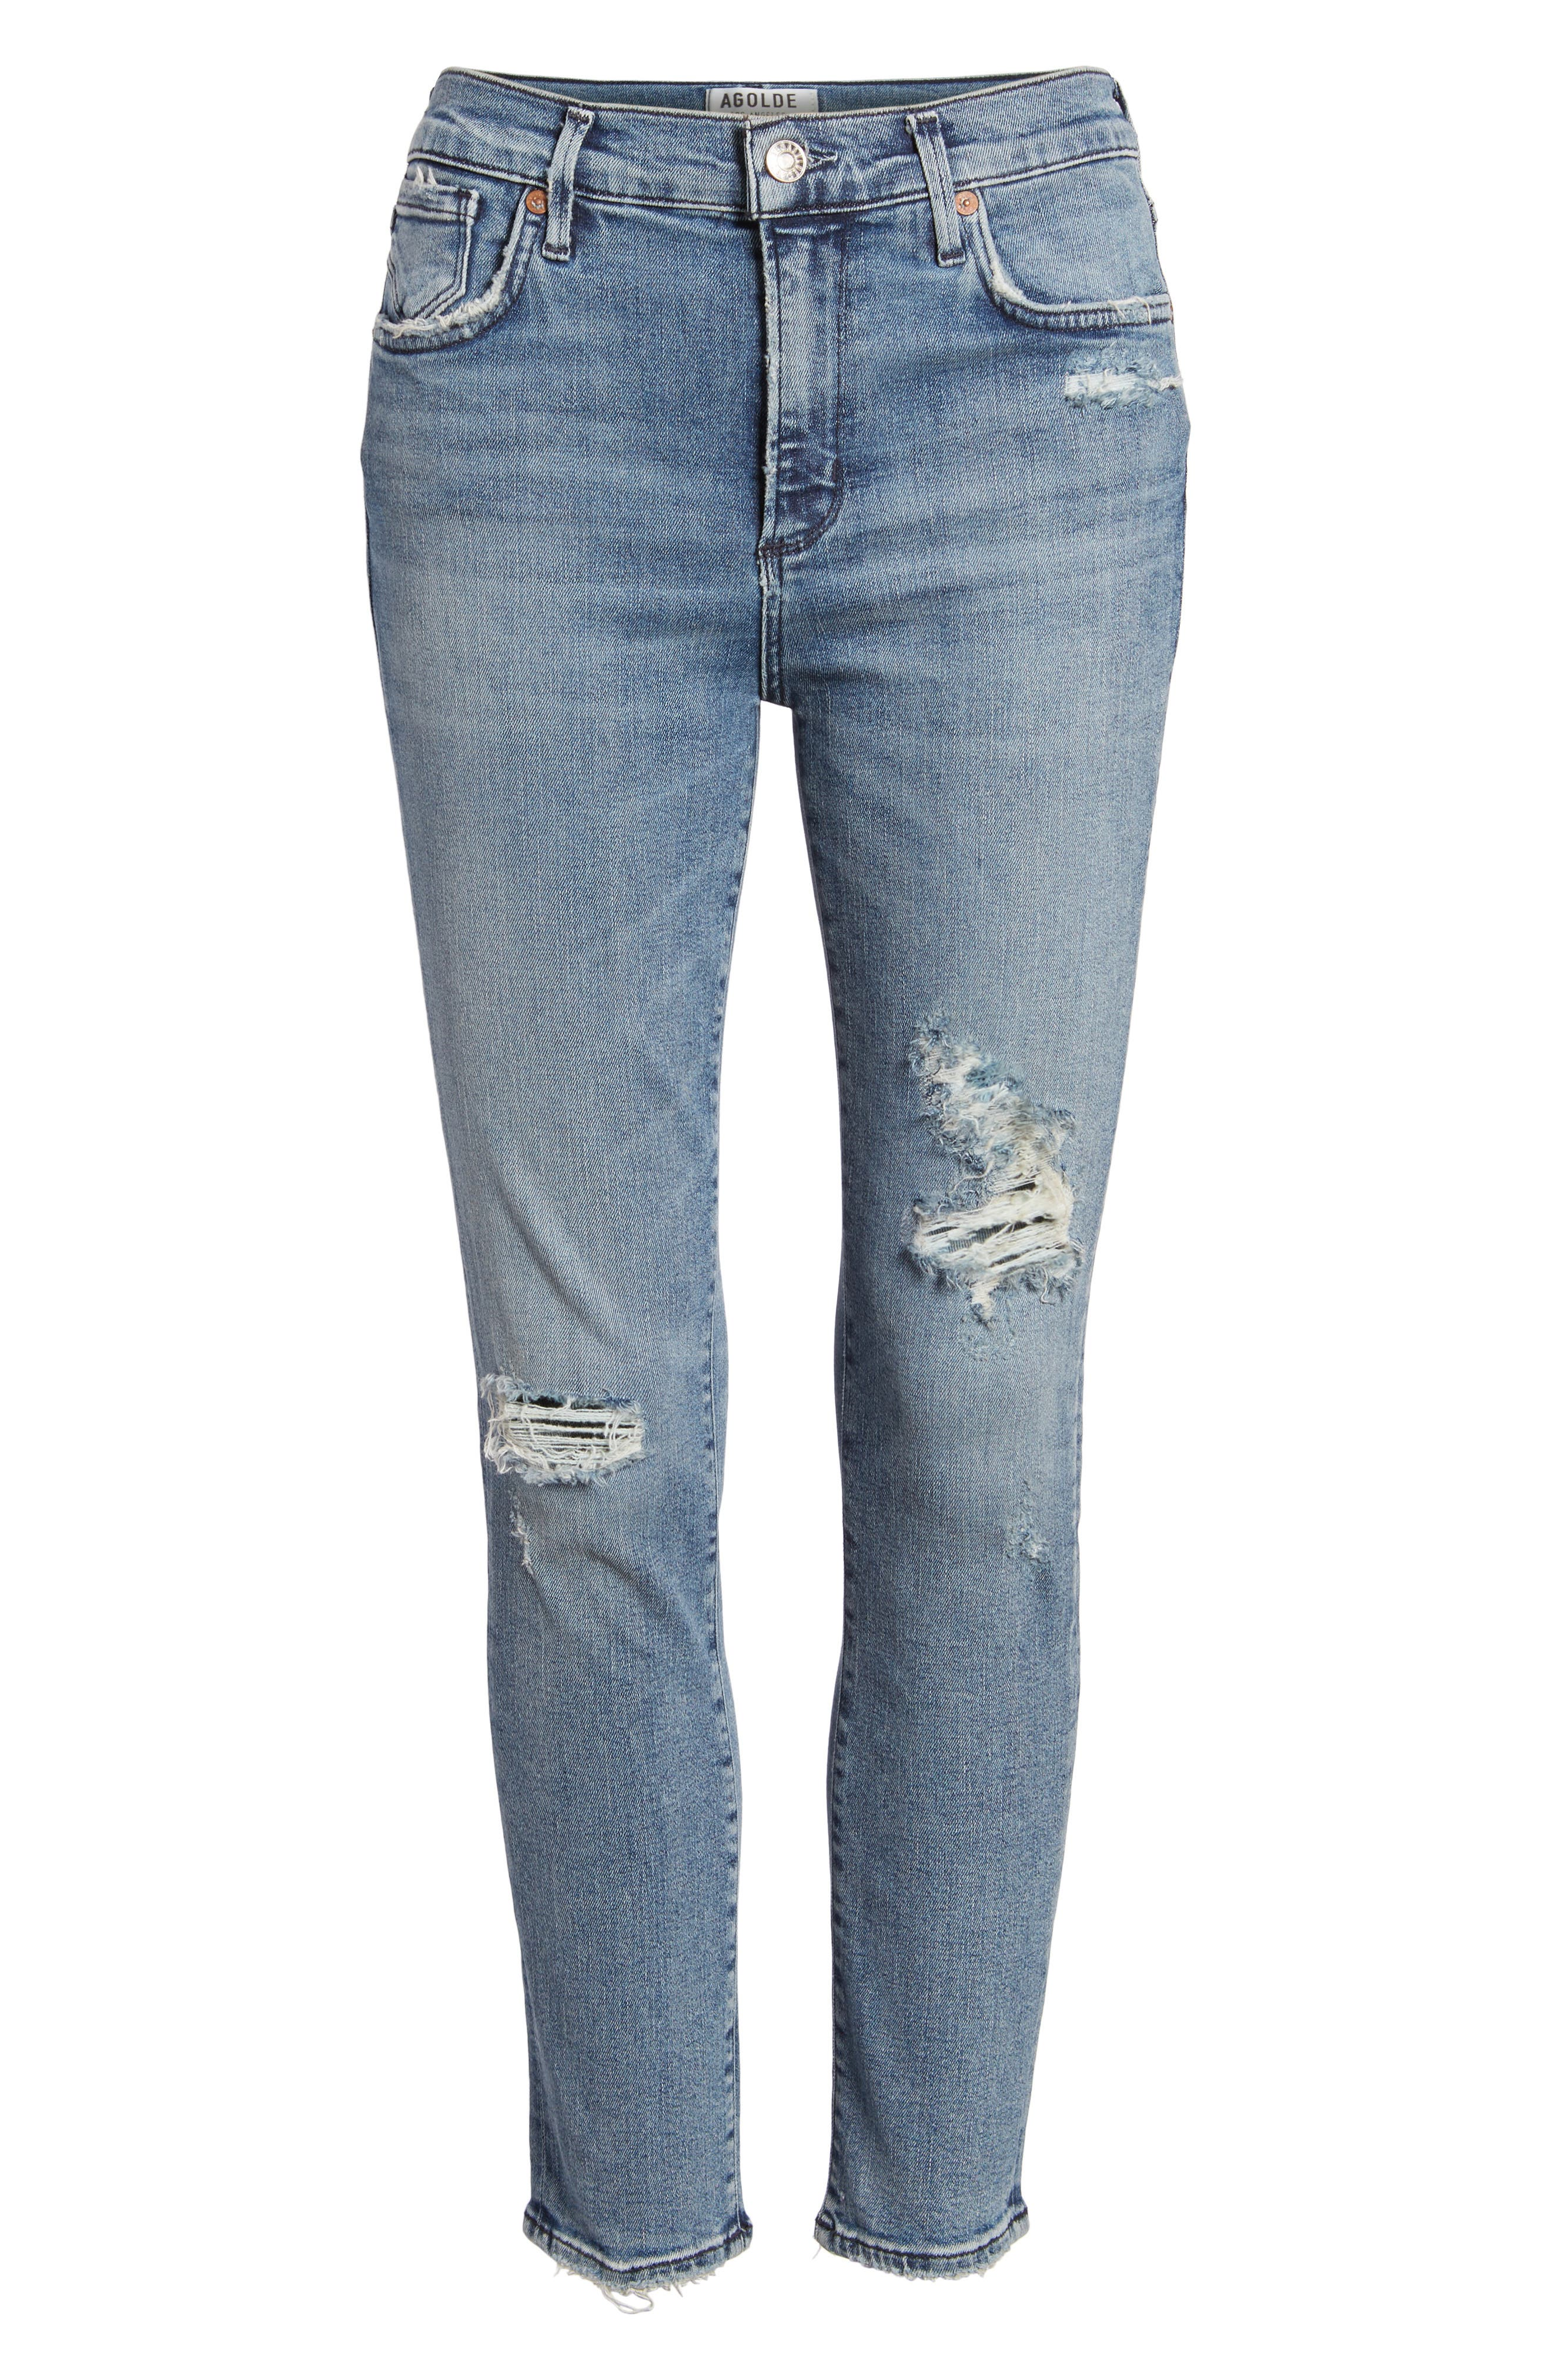 Sophie Ripped High Waist Crop Skinny Jeans,                             Alternate thumbnail 6, color,                             430